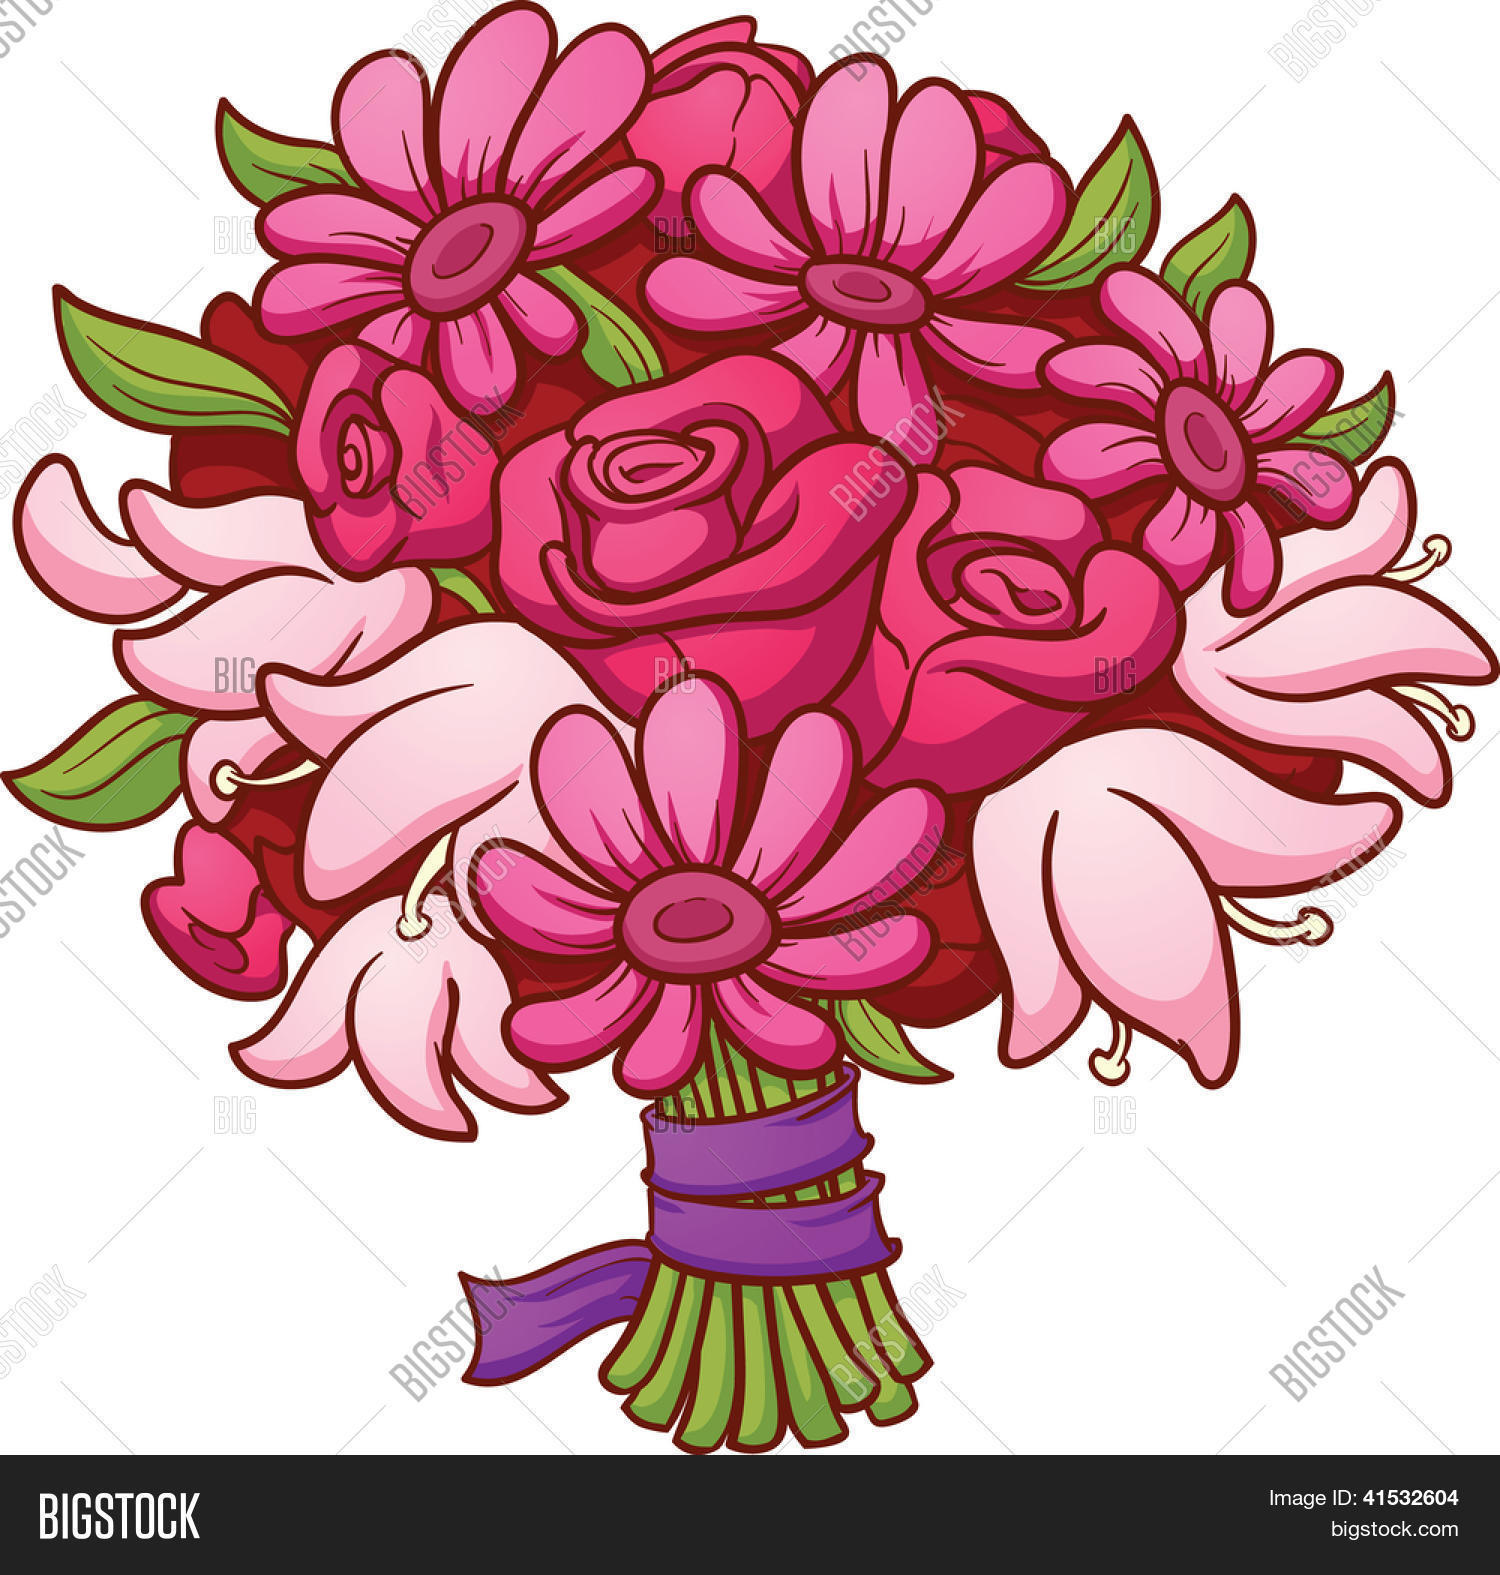 Flower Bouquet Vector Image Photo Free Trial Bigstock